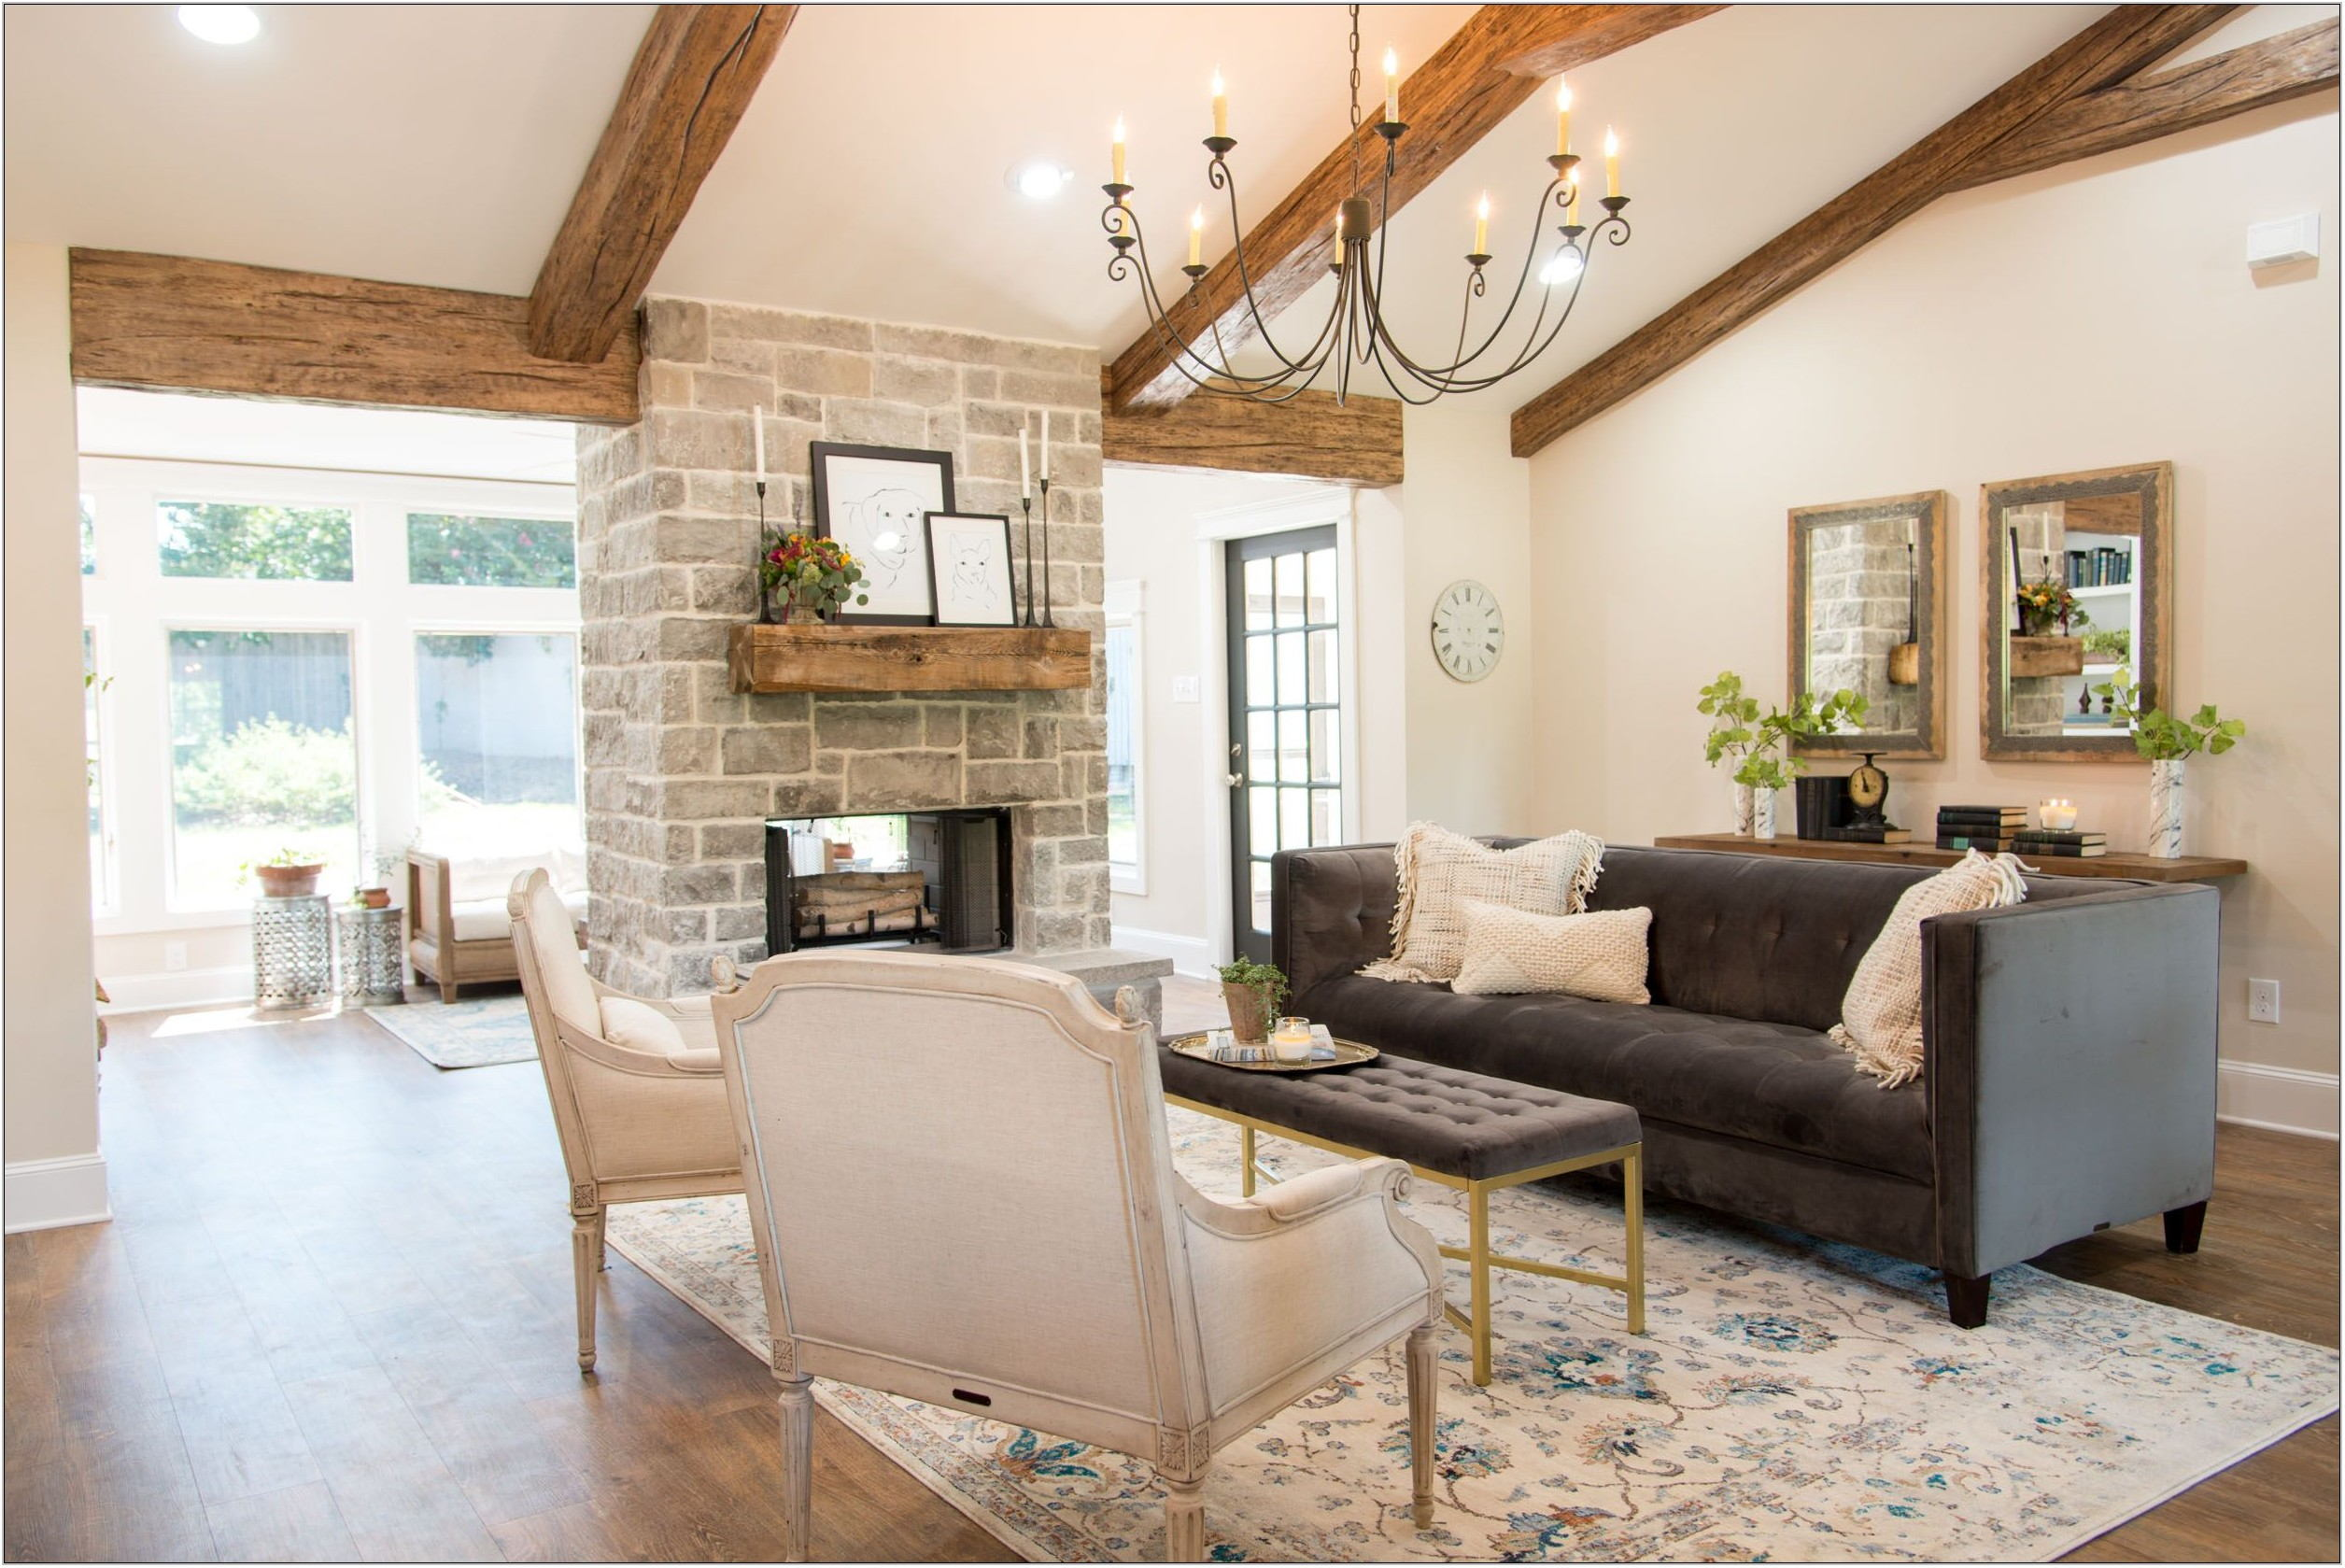 Pictures Of Joanna Gaines Living Rooms